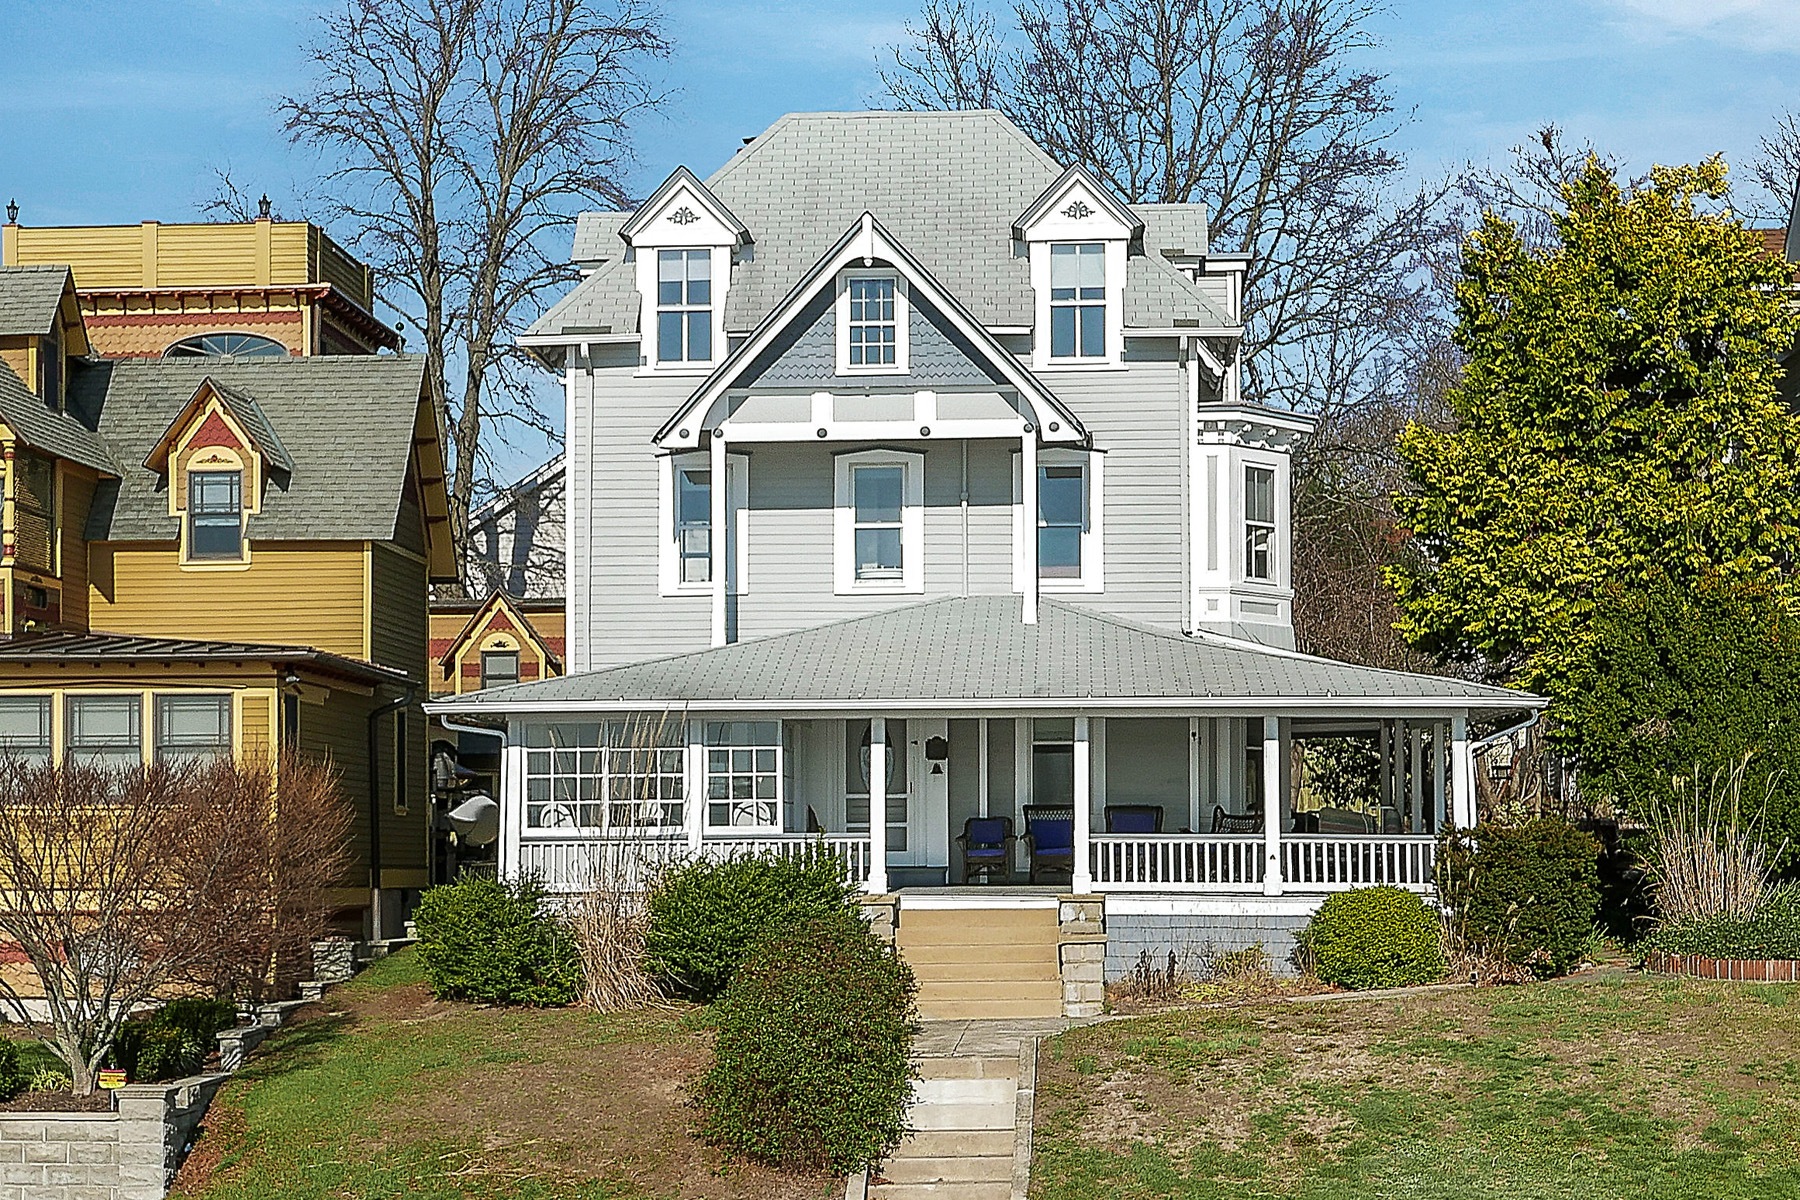 Single Family Home for Sale at Fabulous River Views 56 River Avenue Island Heights, New Jersey 08732 United States